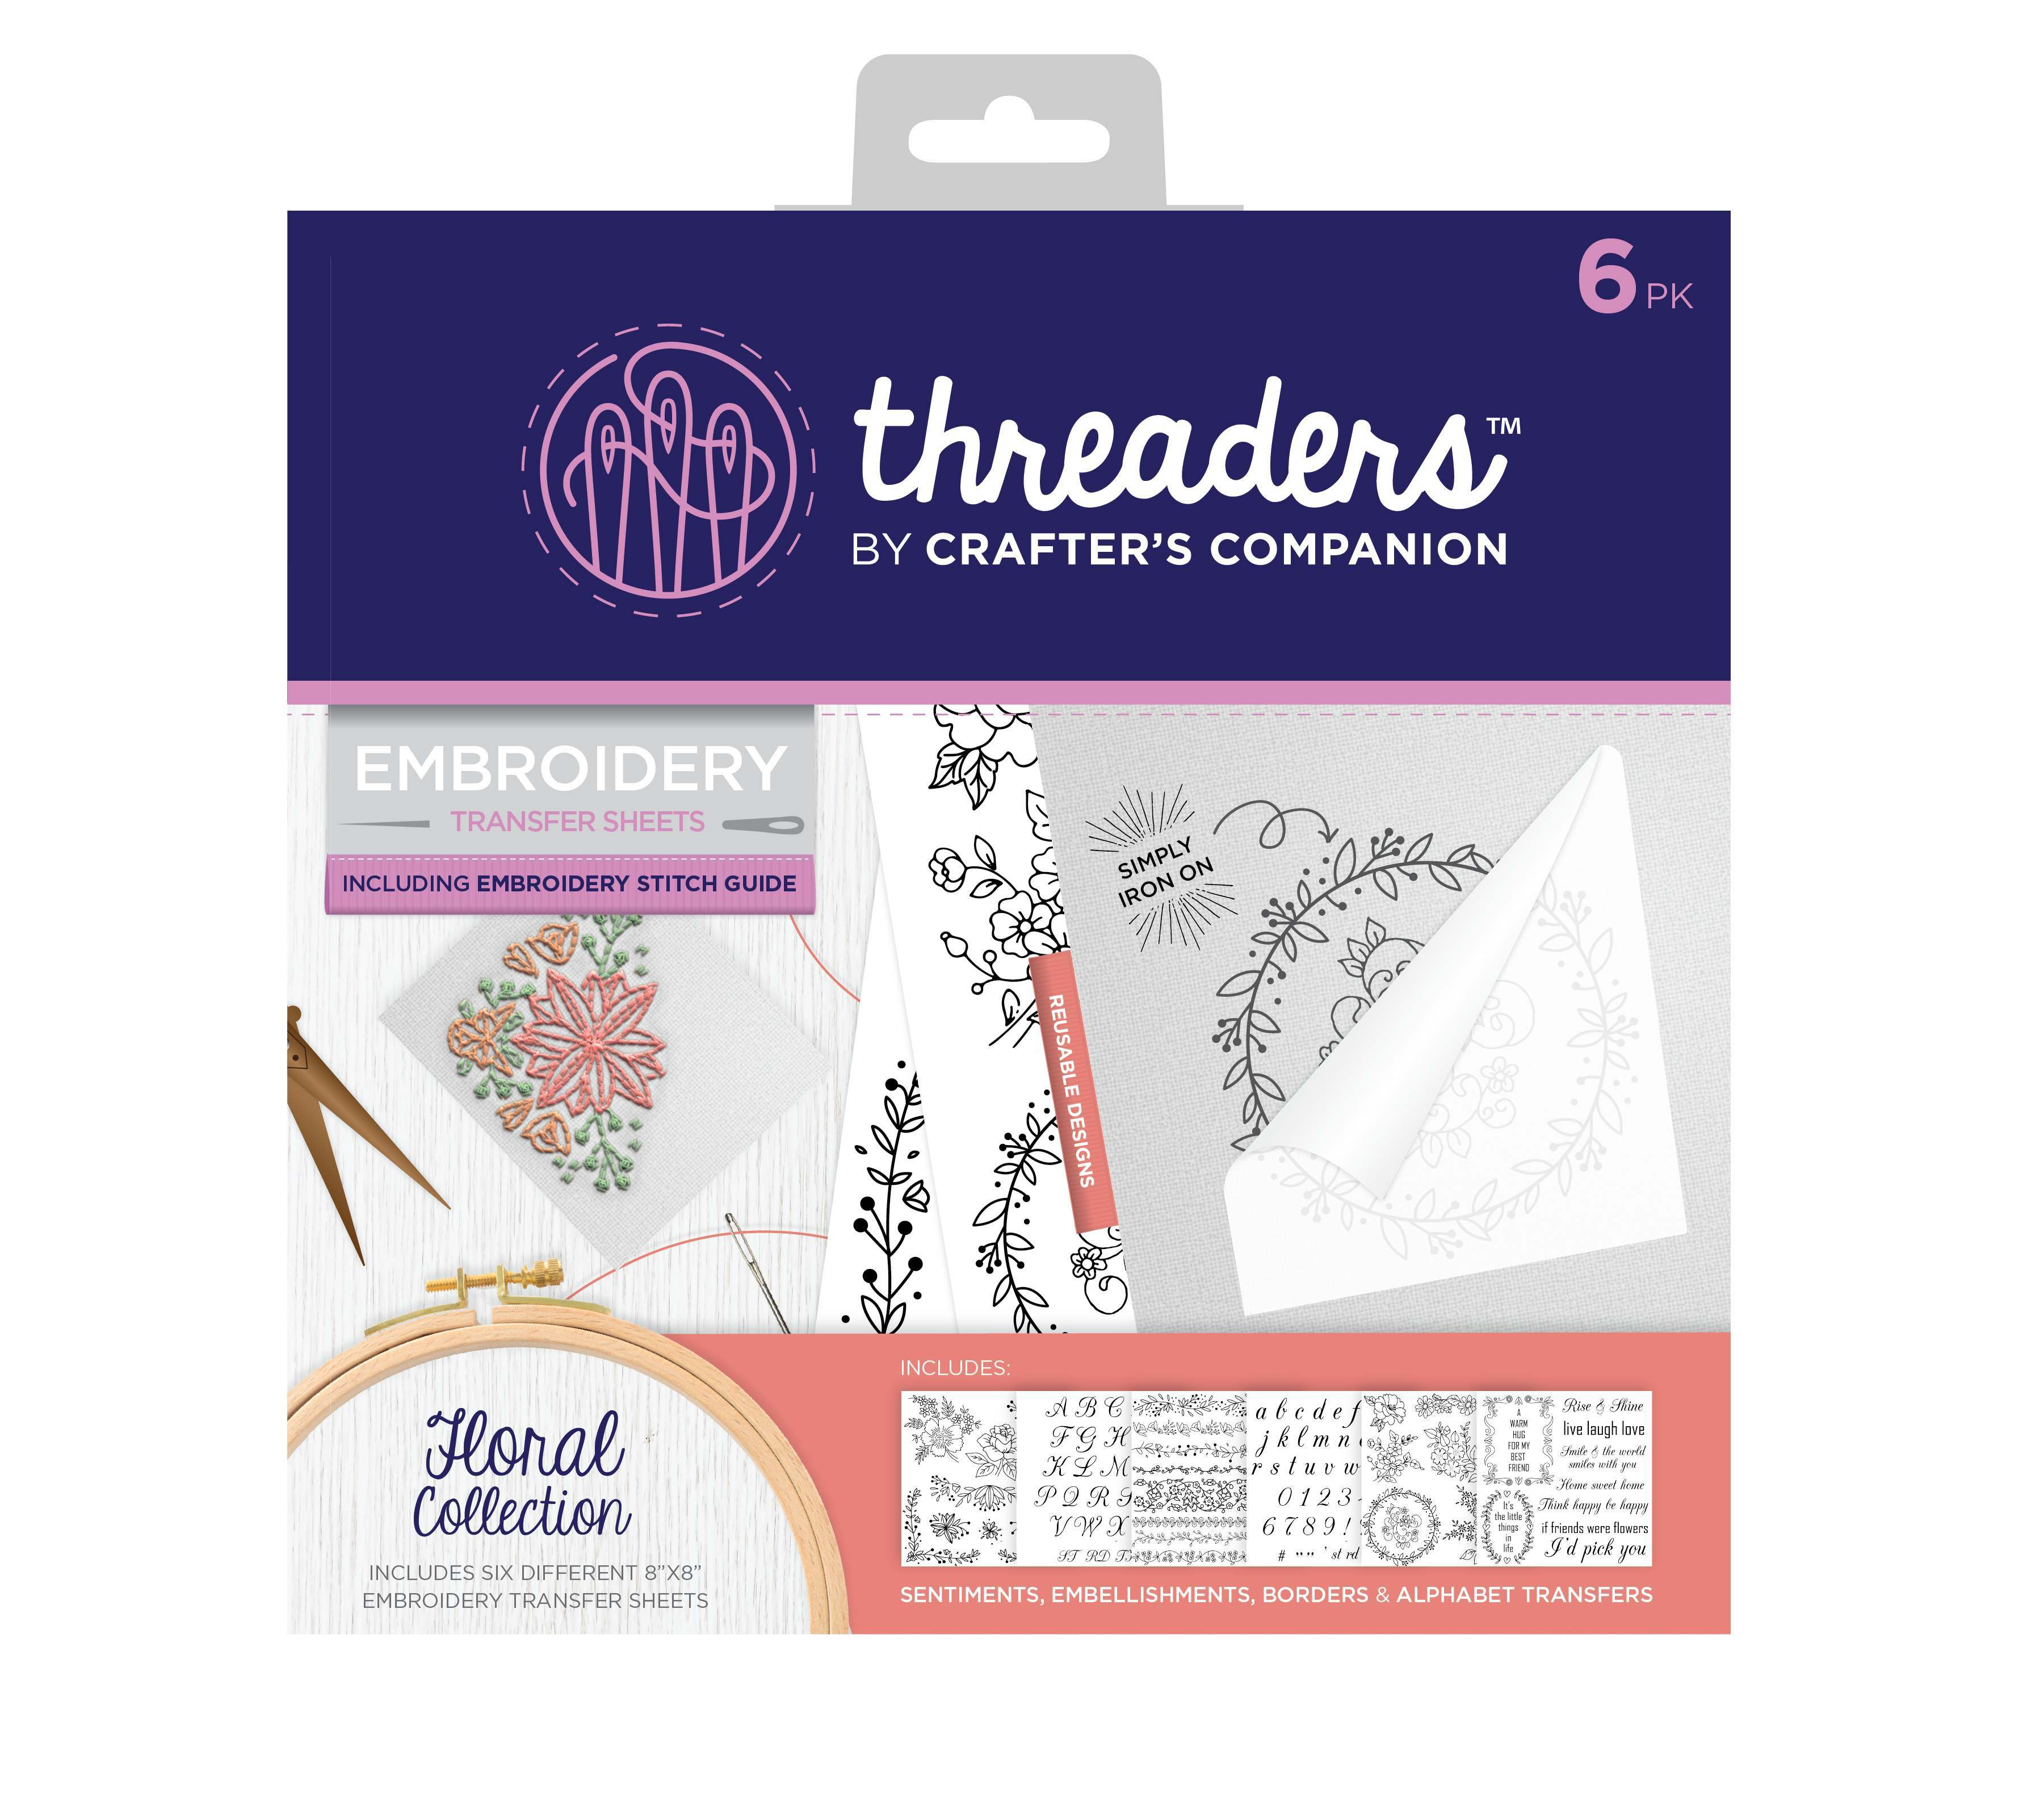 Embroidery Transfer Sheets